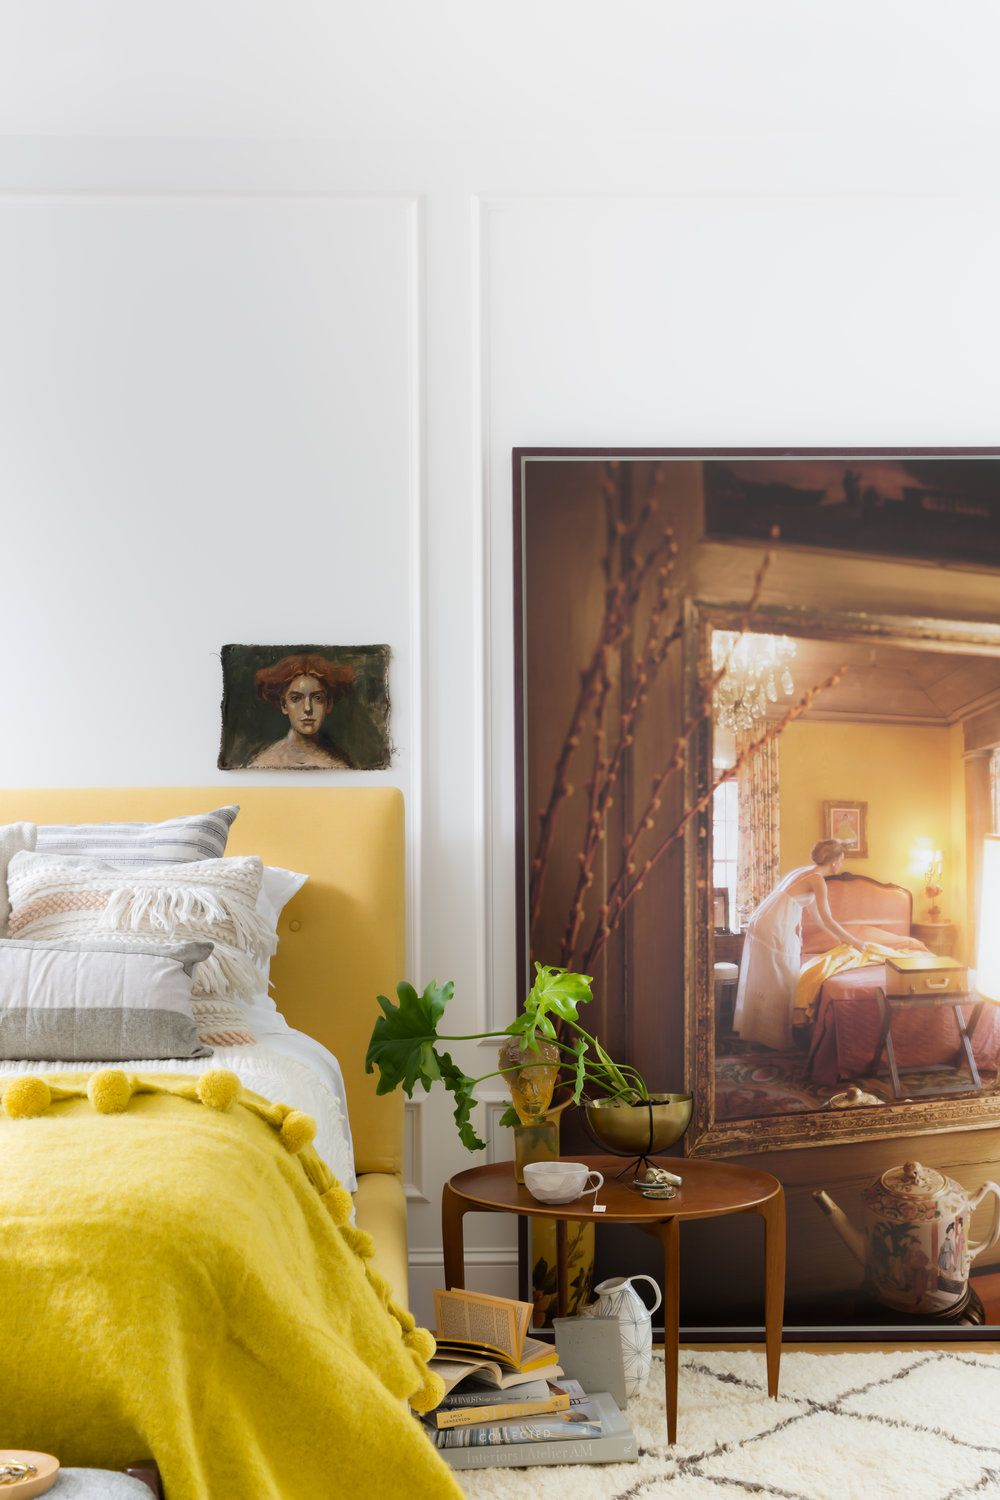 8 Cheerful Yellow Bedrooms - Chic Ideas for Yellow Bedroom Decor